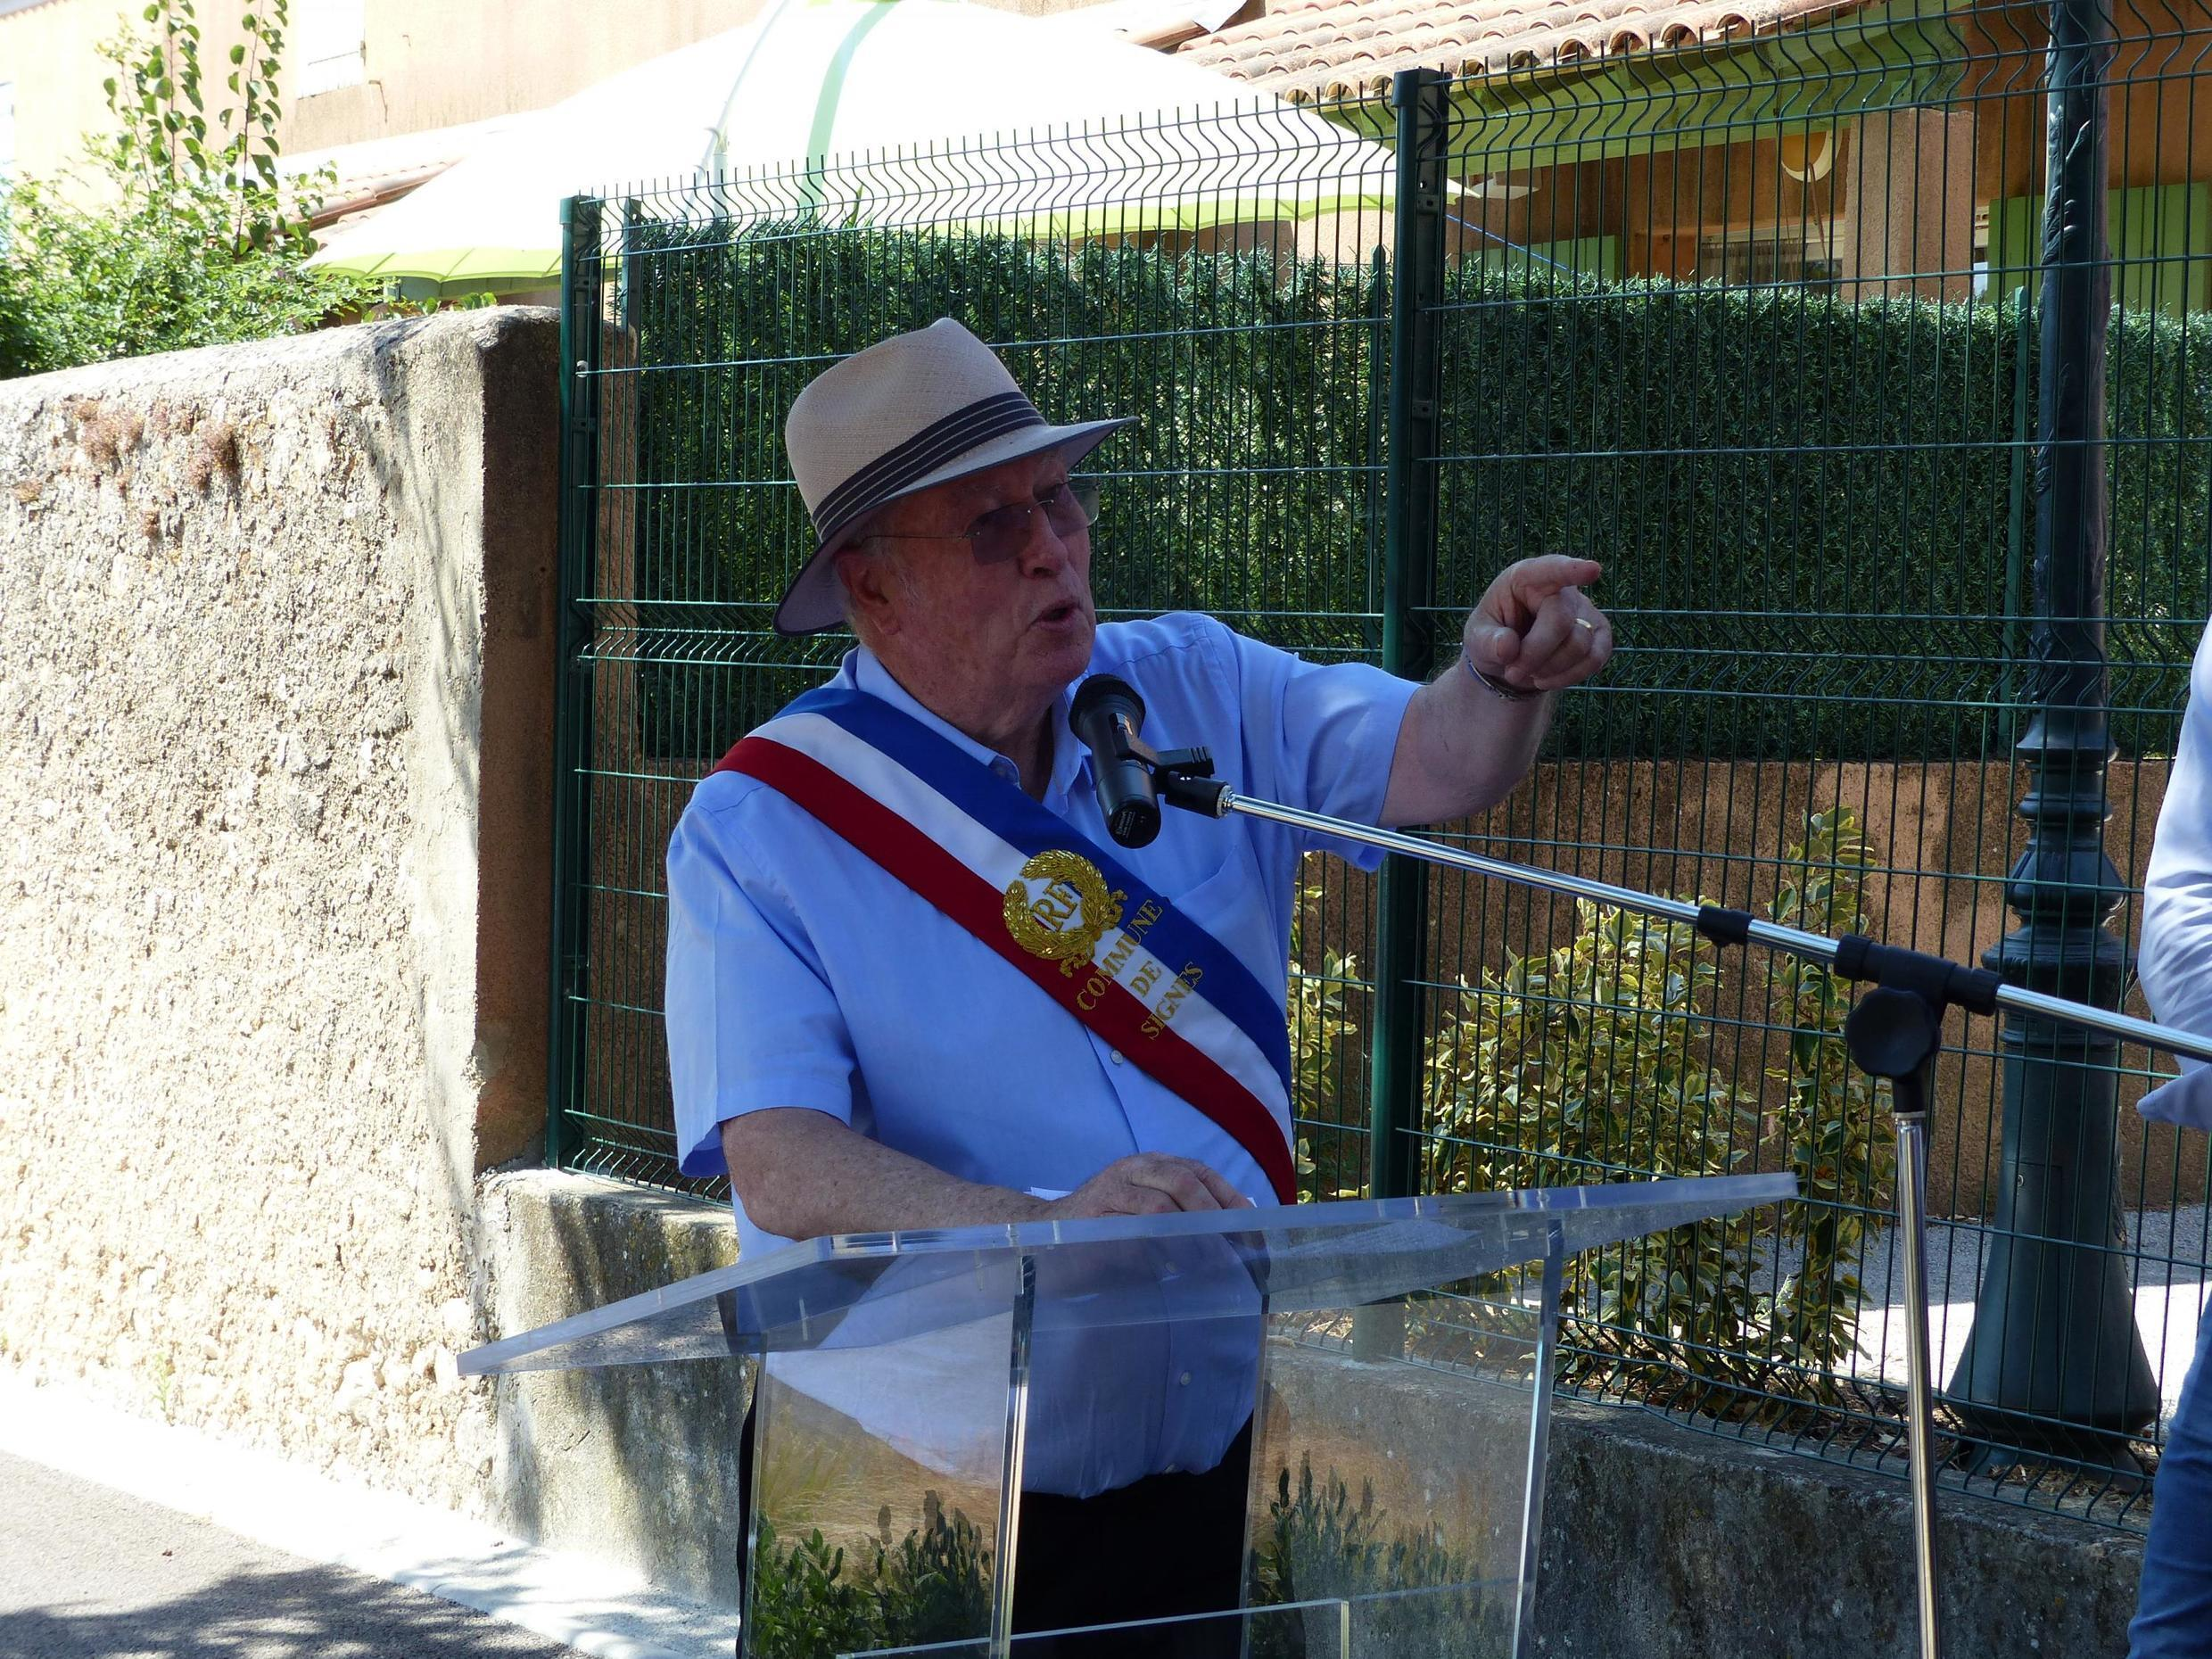 Mayor Jean-Mathieu Michel during the inauguration on 1 July of Resistance avenue in the village of Signes in southern France